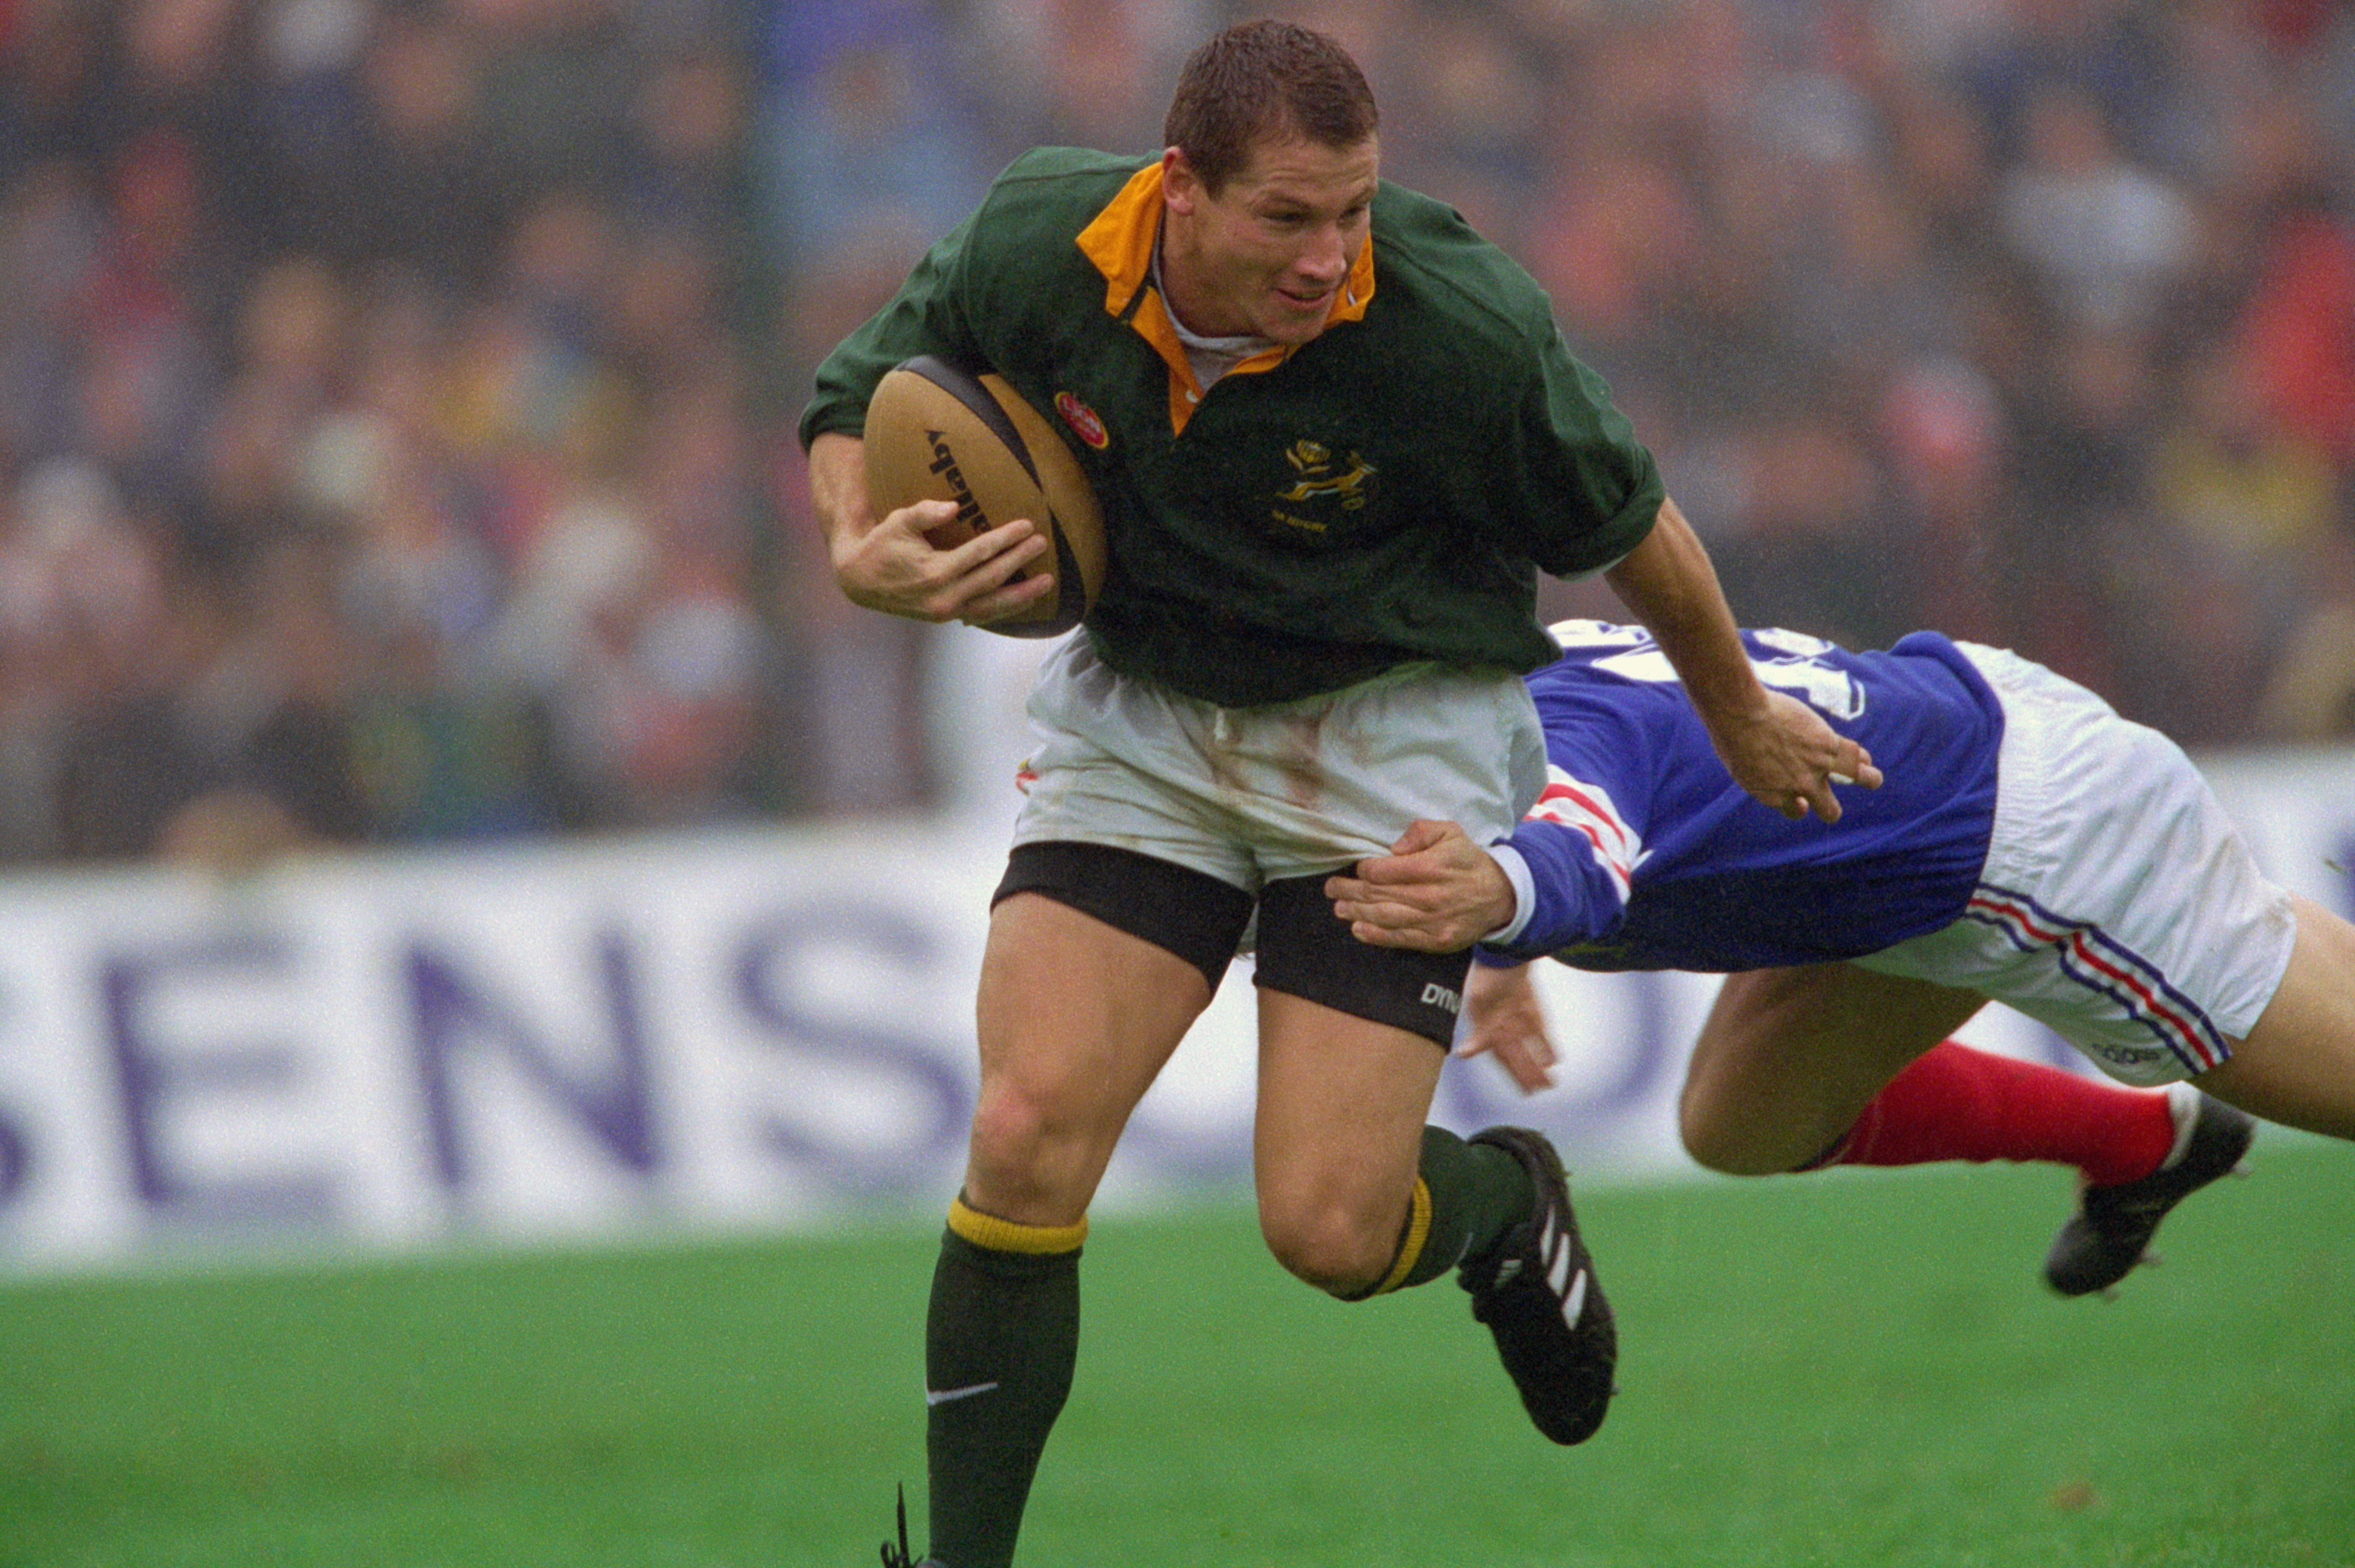 The South African wing evades a flying tackle during the first match of a test series against the French. The Springboks went on to win (22-12).